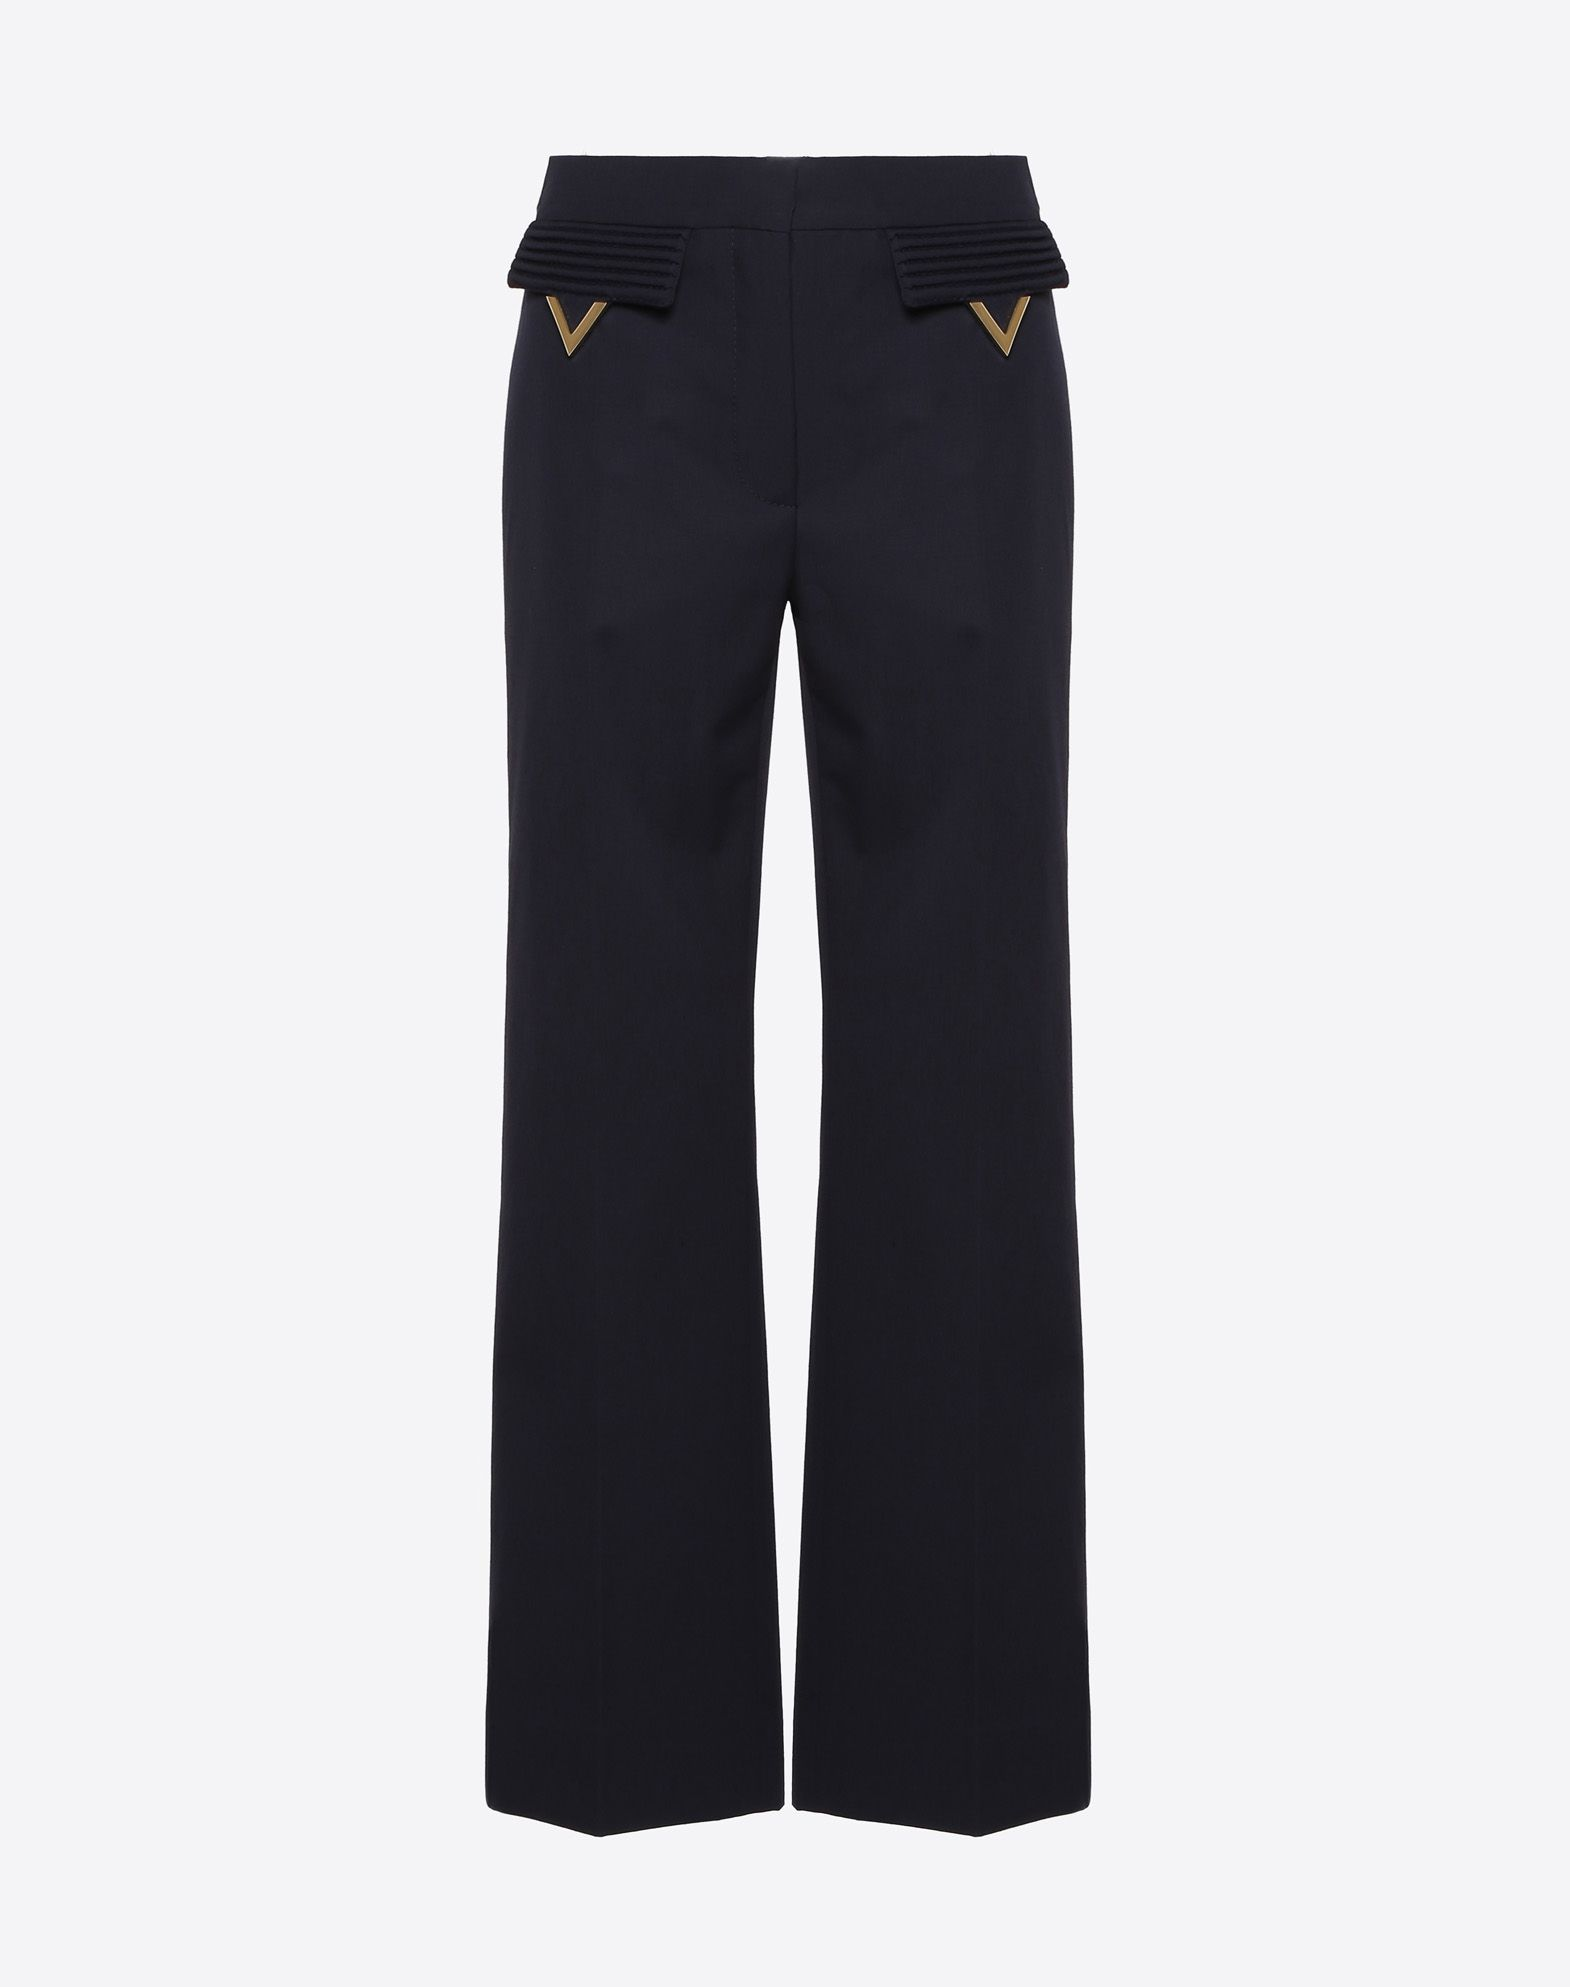 Wool Gabardine Trousers with Gold V Details